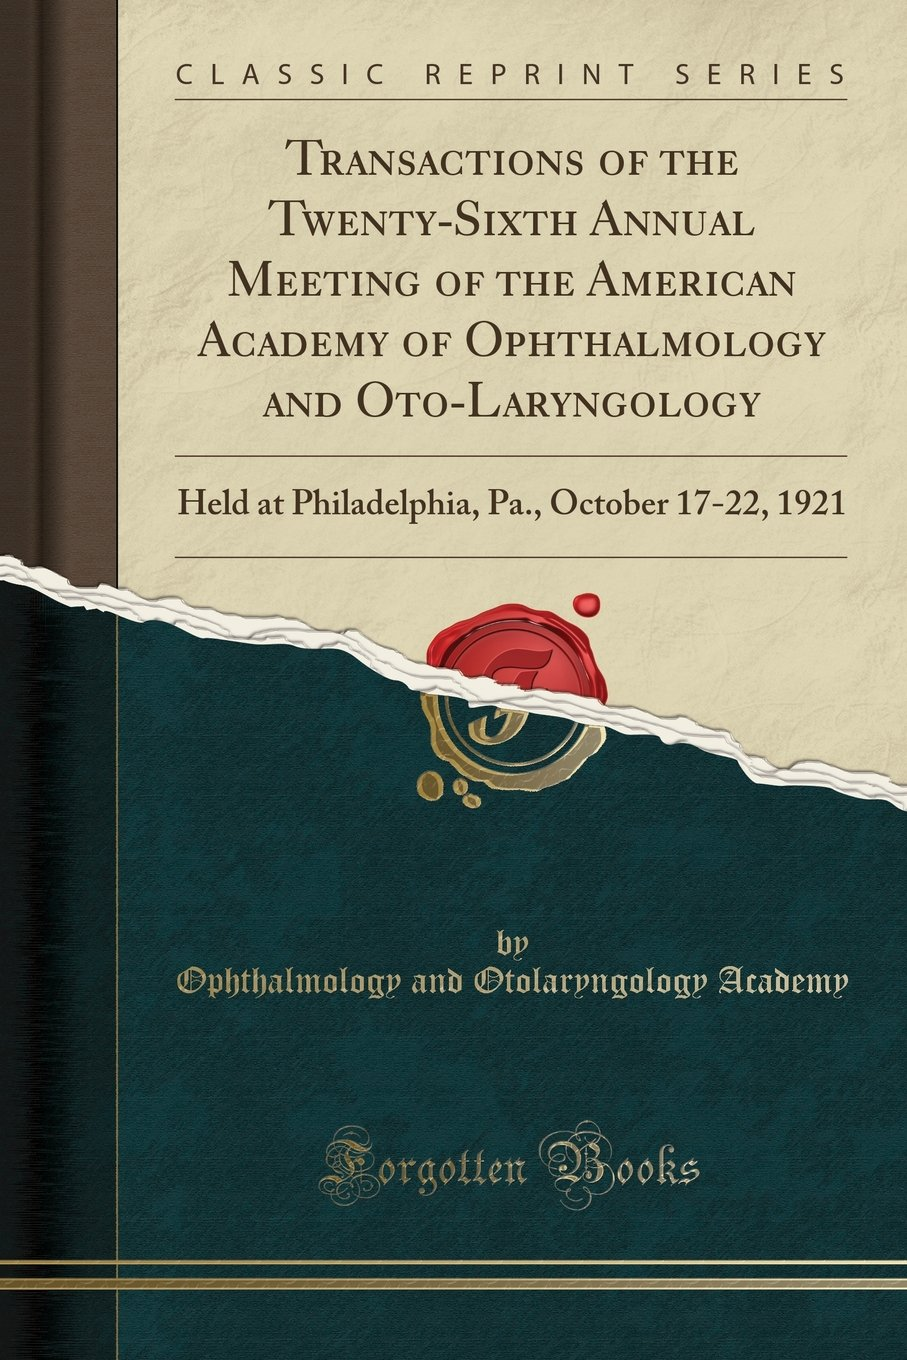 Read Online Transactions of the Twenty-Sixth Annual Meeting of the American Academy of Ophthalmology and Oto-Laryngology: Held at Philadelphia, Pa., October 17-22, 1921 (Classic Reprint) ebook